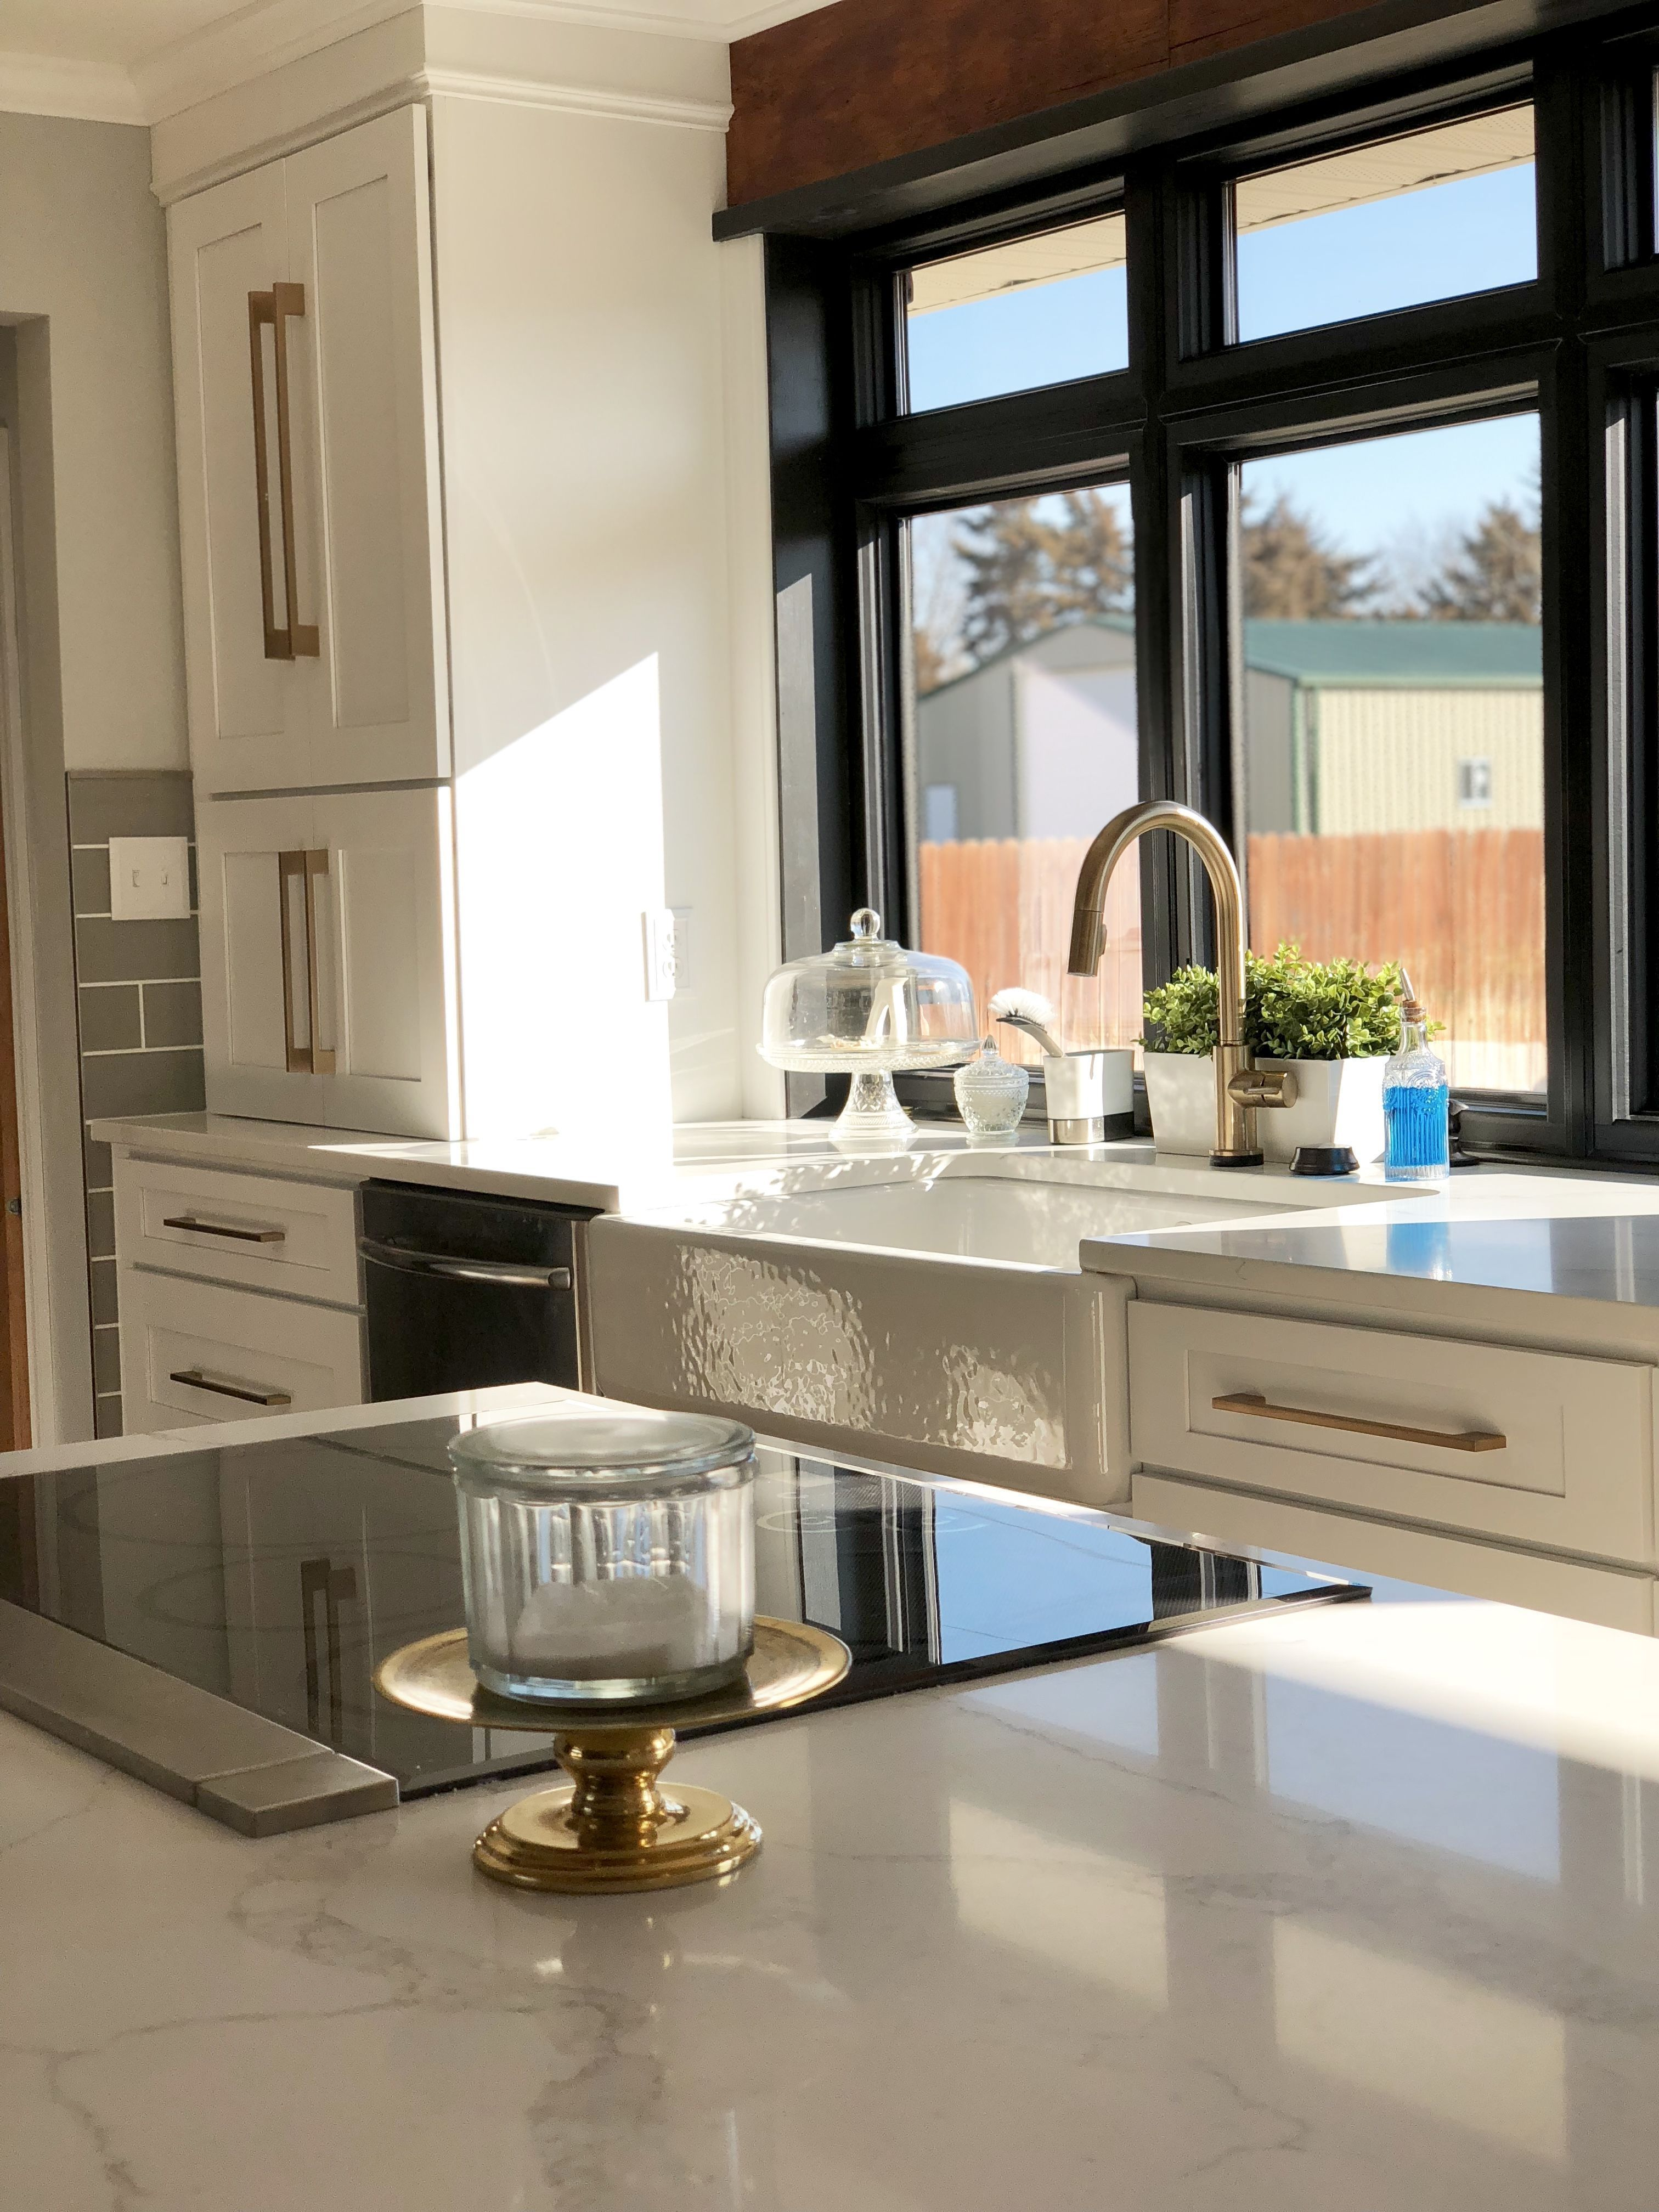 GE Cafe cooktop white cabinets farmhouse sink gold accents GE Cafe cooktop white cabinets farmhouse sink gold accents